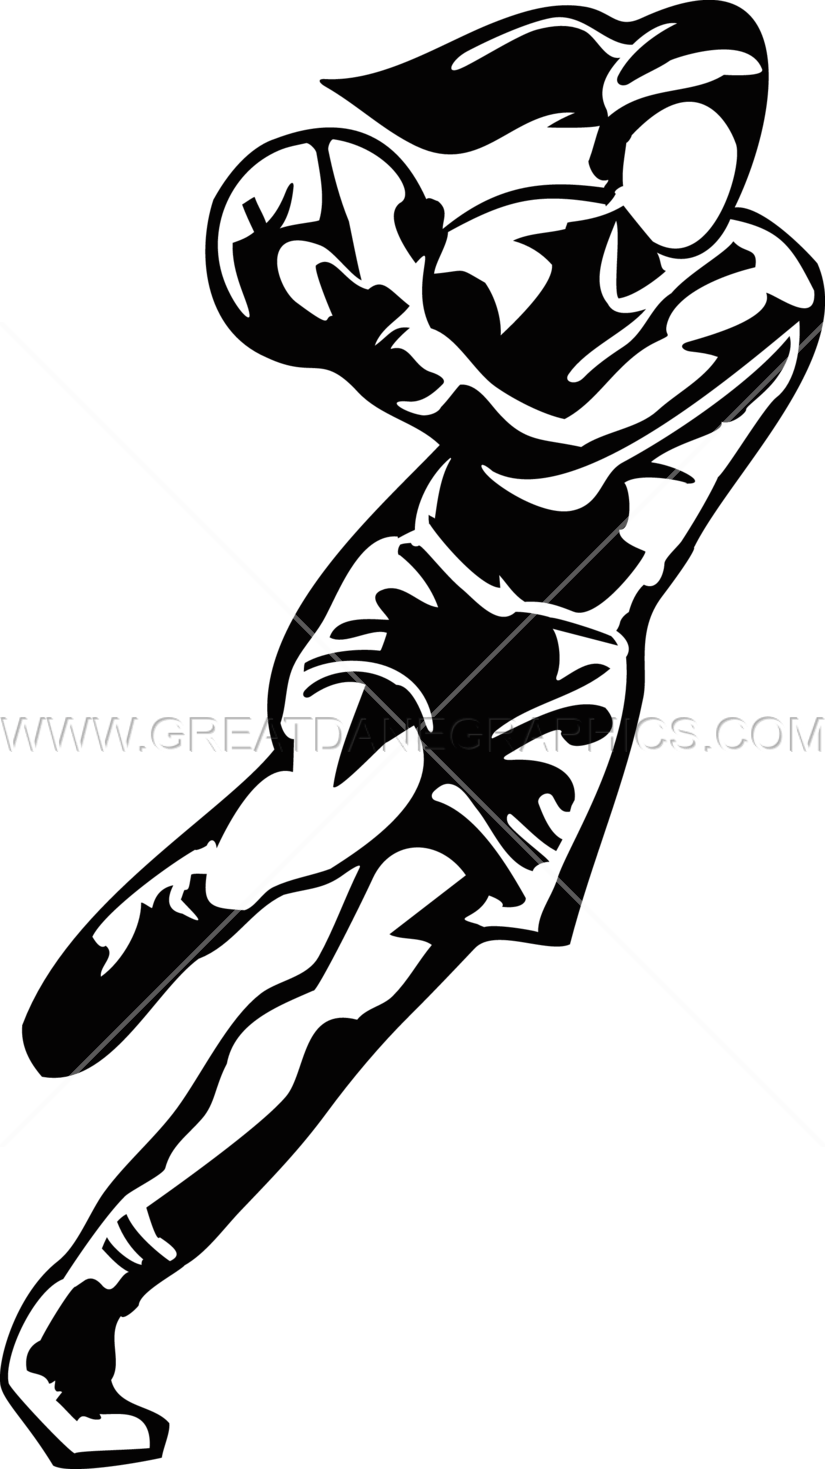 Volleyball clipart female volleyball player. Basketball production ready artwork